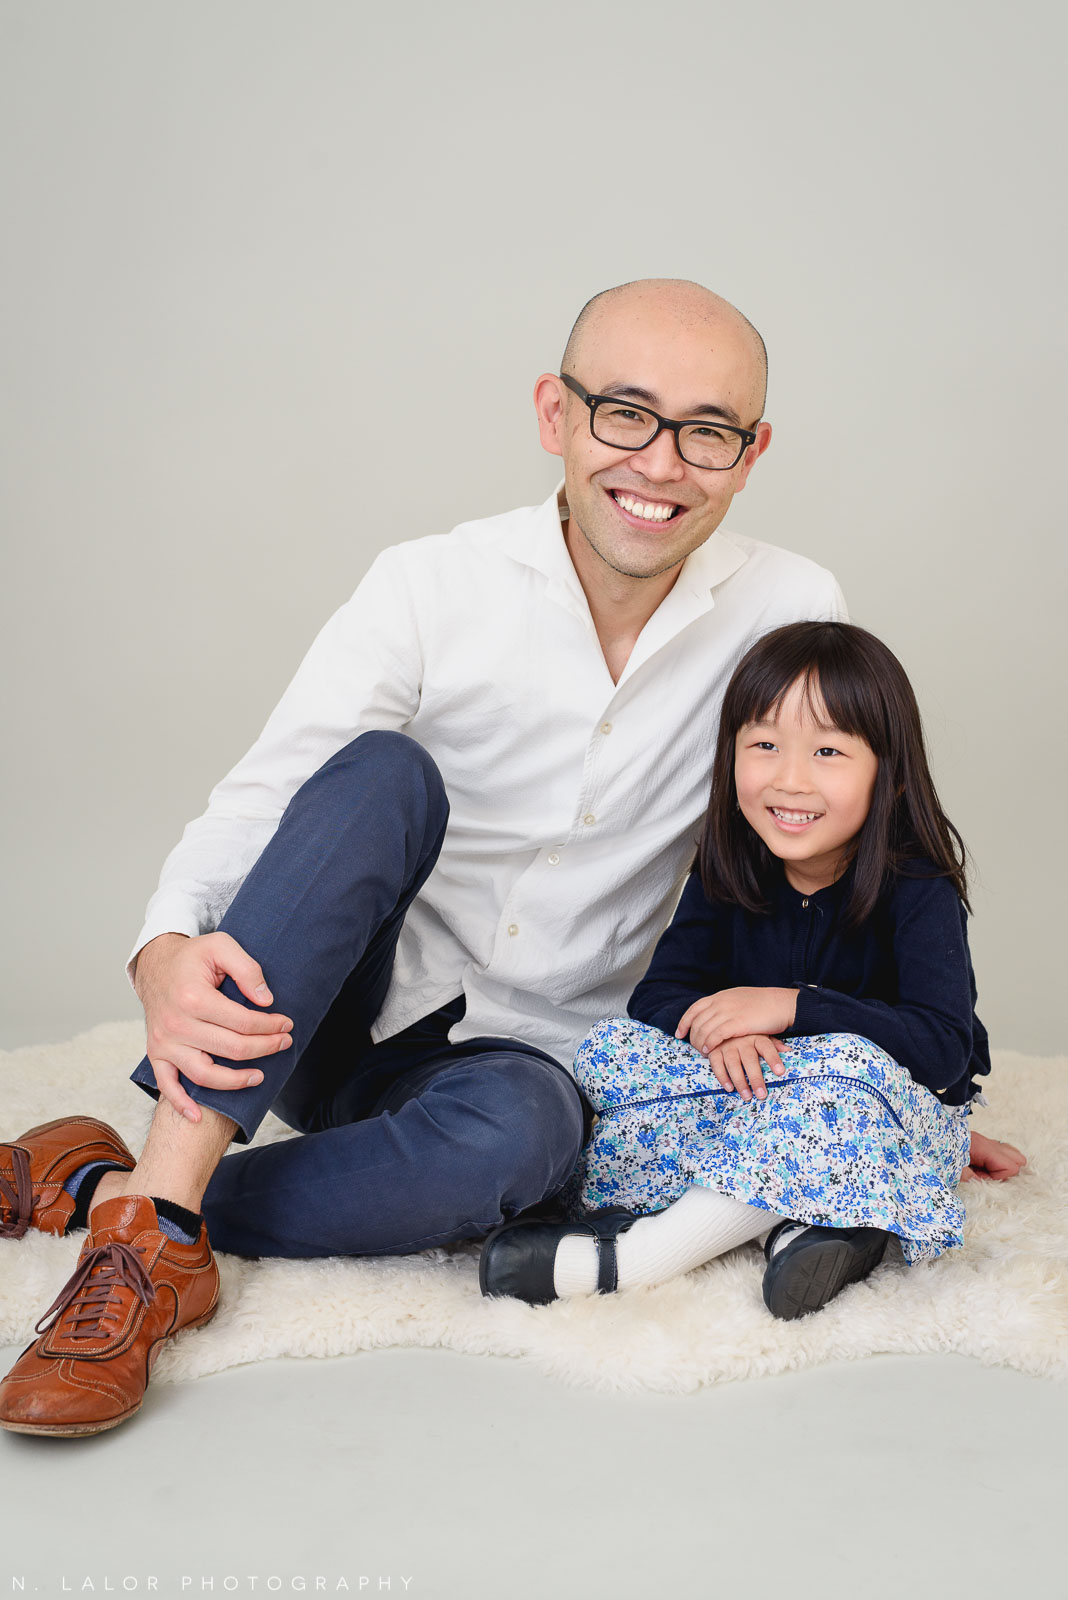 Dad with 5-year old daughter. Greenwich CT Photo Studio family session by N. Lalor Photography.